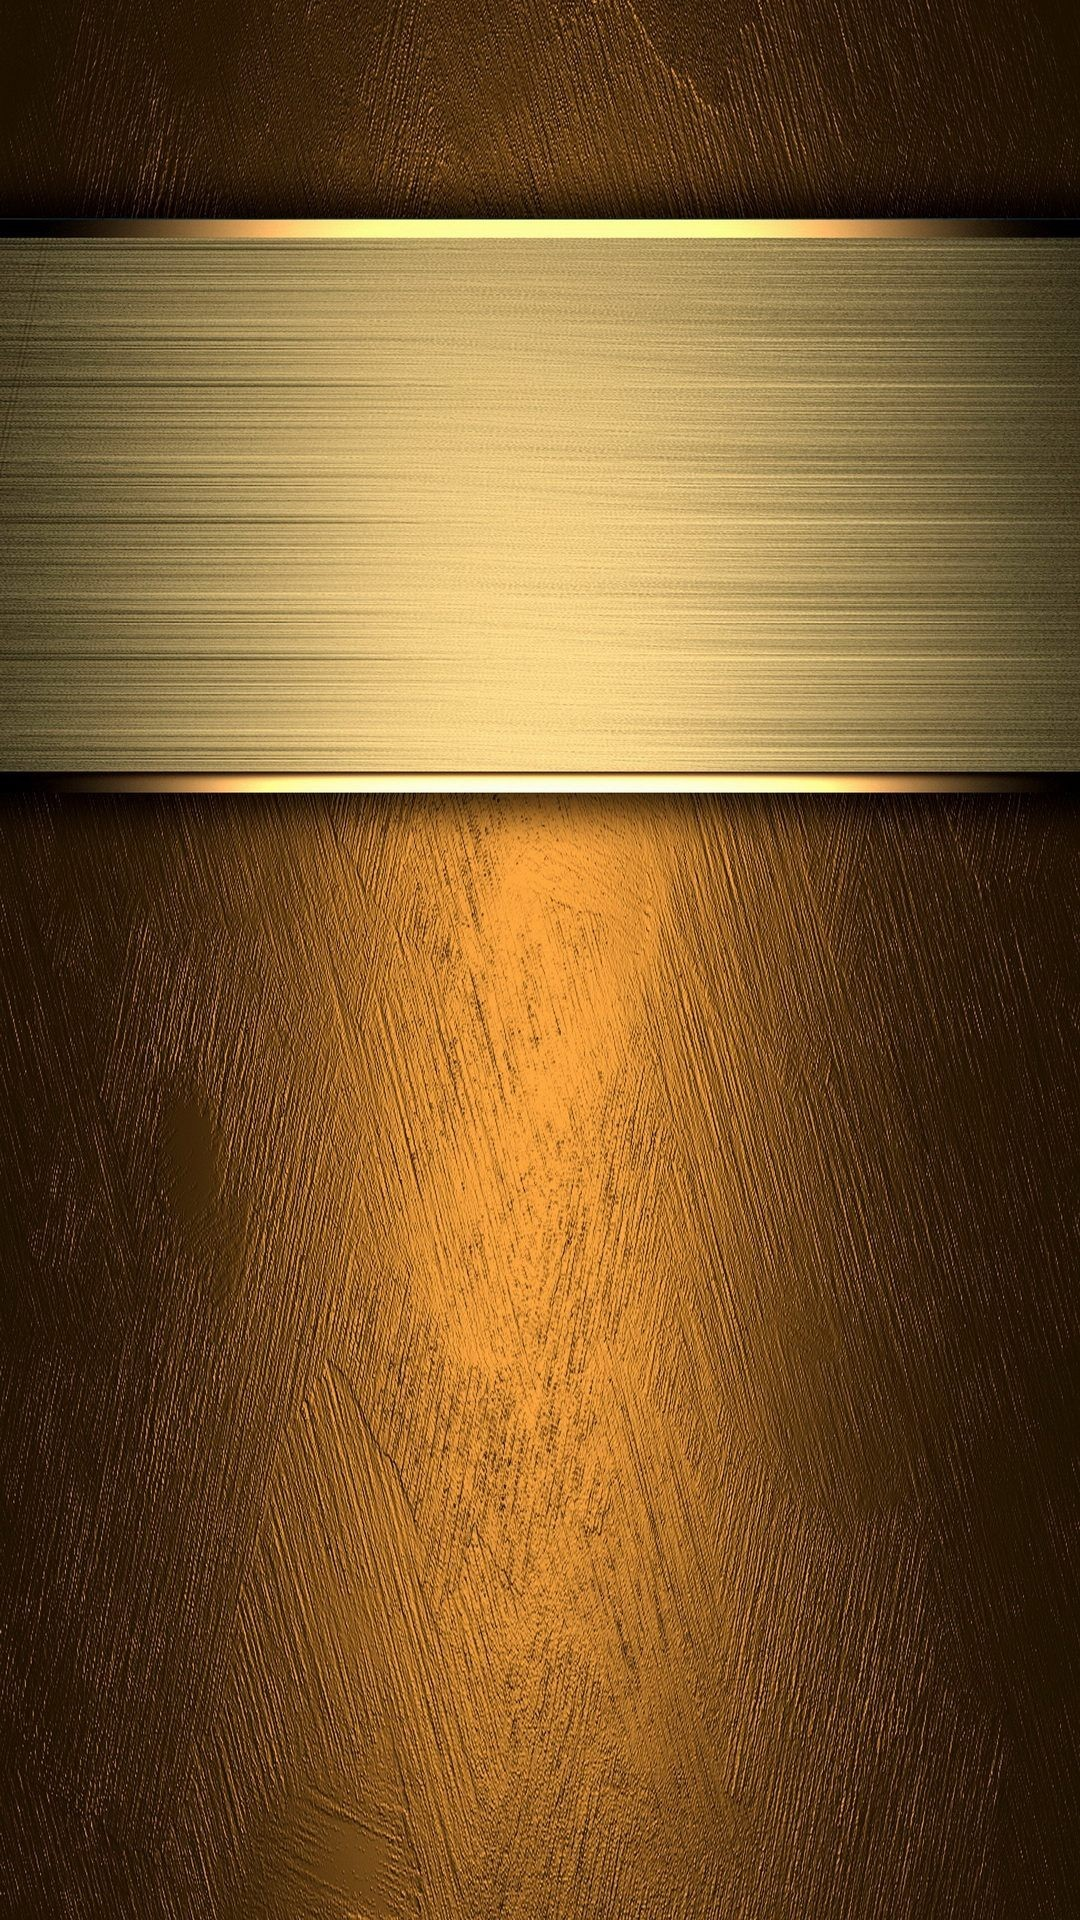 Elegant Gold iPhone 6 Plus Wallpapers   abstract background iPhone 6 1080x1920